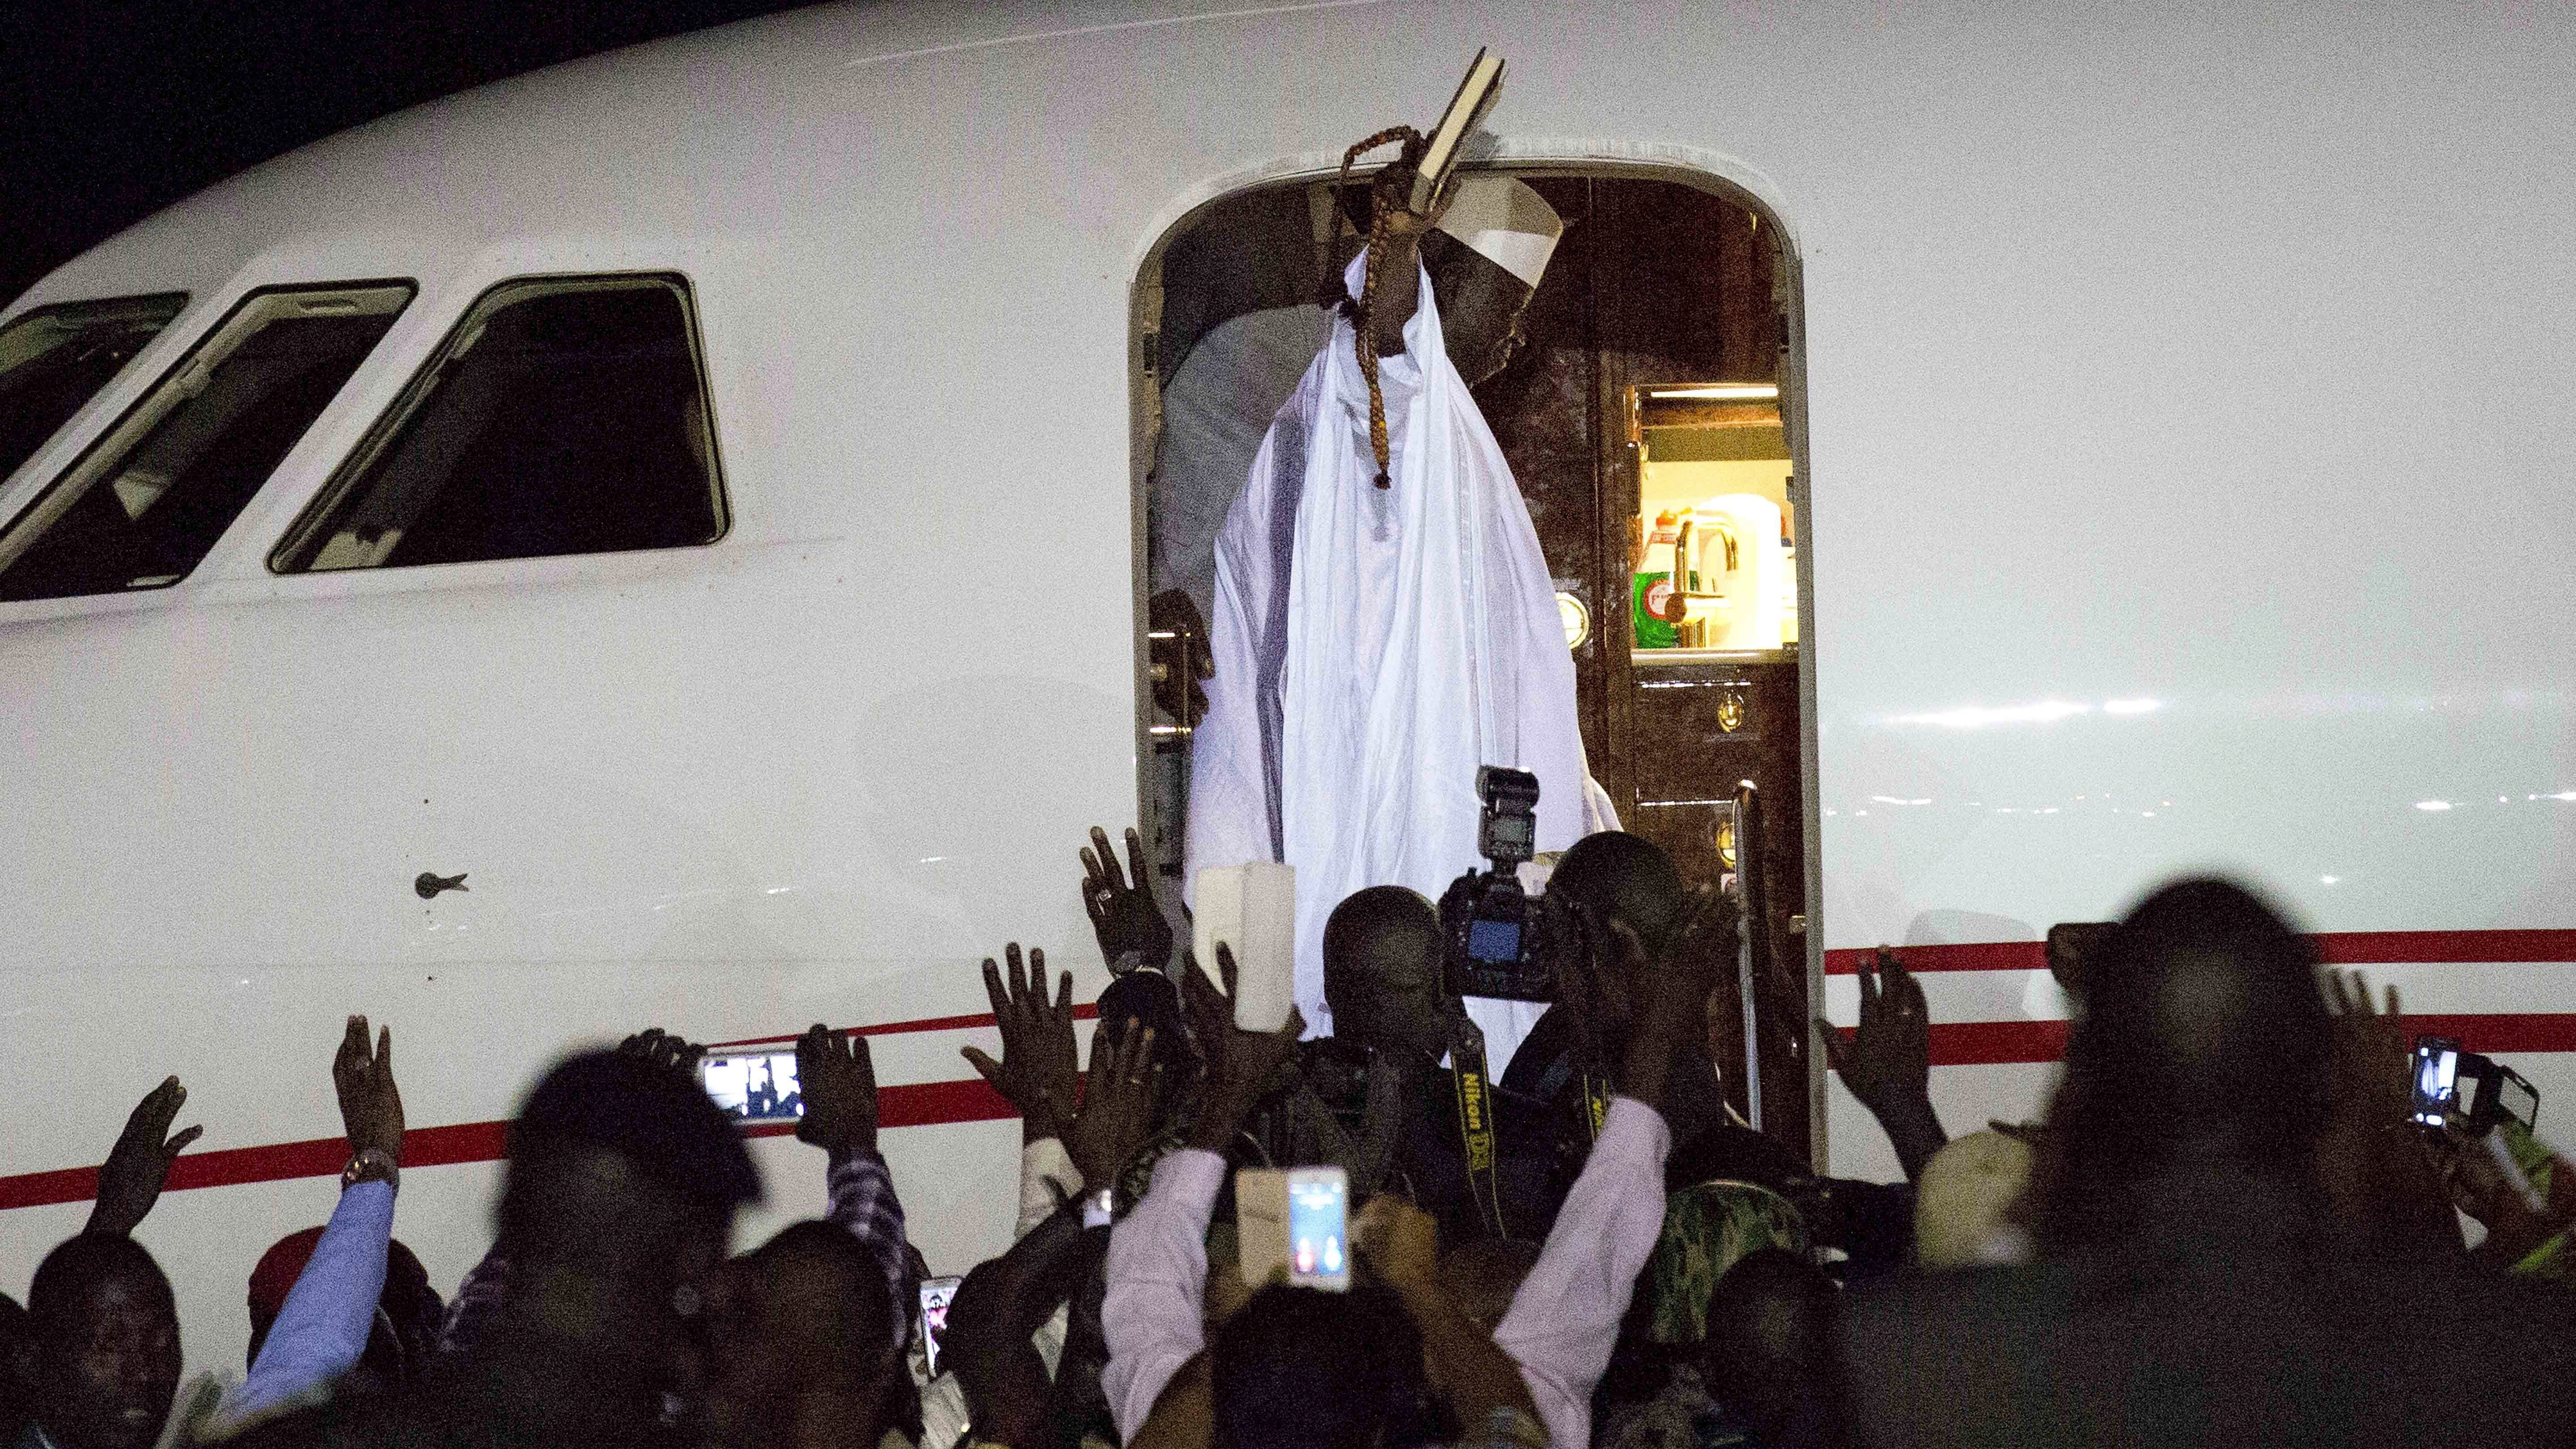 Gambia's defeated leader Yahya Jammeh waves to supporters as he departs from Banjul airport Saturday Jan. 21, 2017.  Jammeh announced early Saturday he has decided to relinquish power, after hours of last-ditch talks with regional leaders and the threat by a regional military force to make him leave. (AP Photo/Jerome Delay)